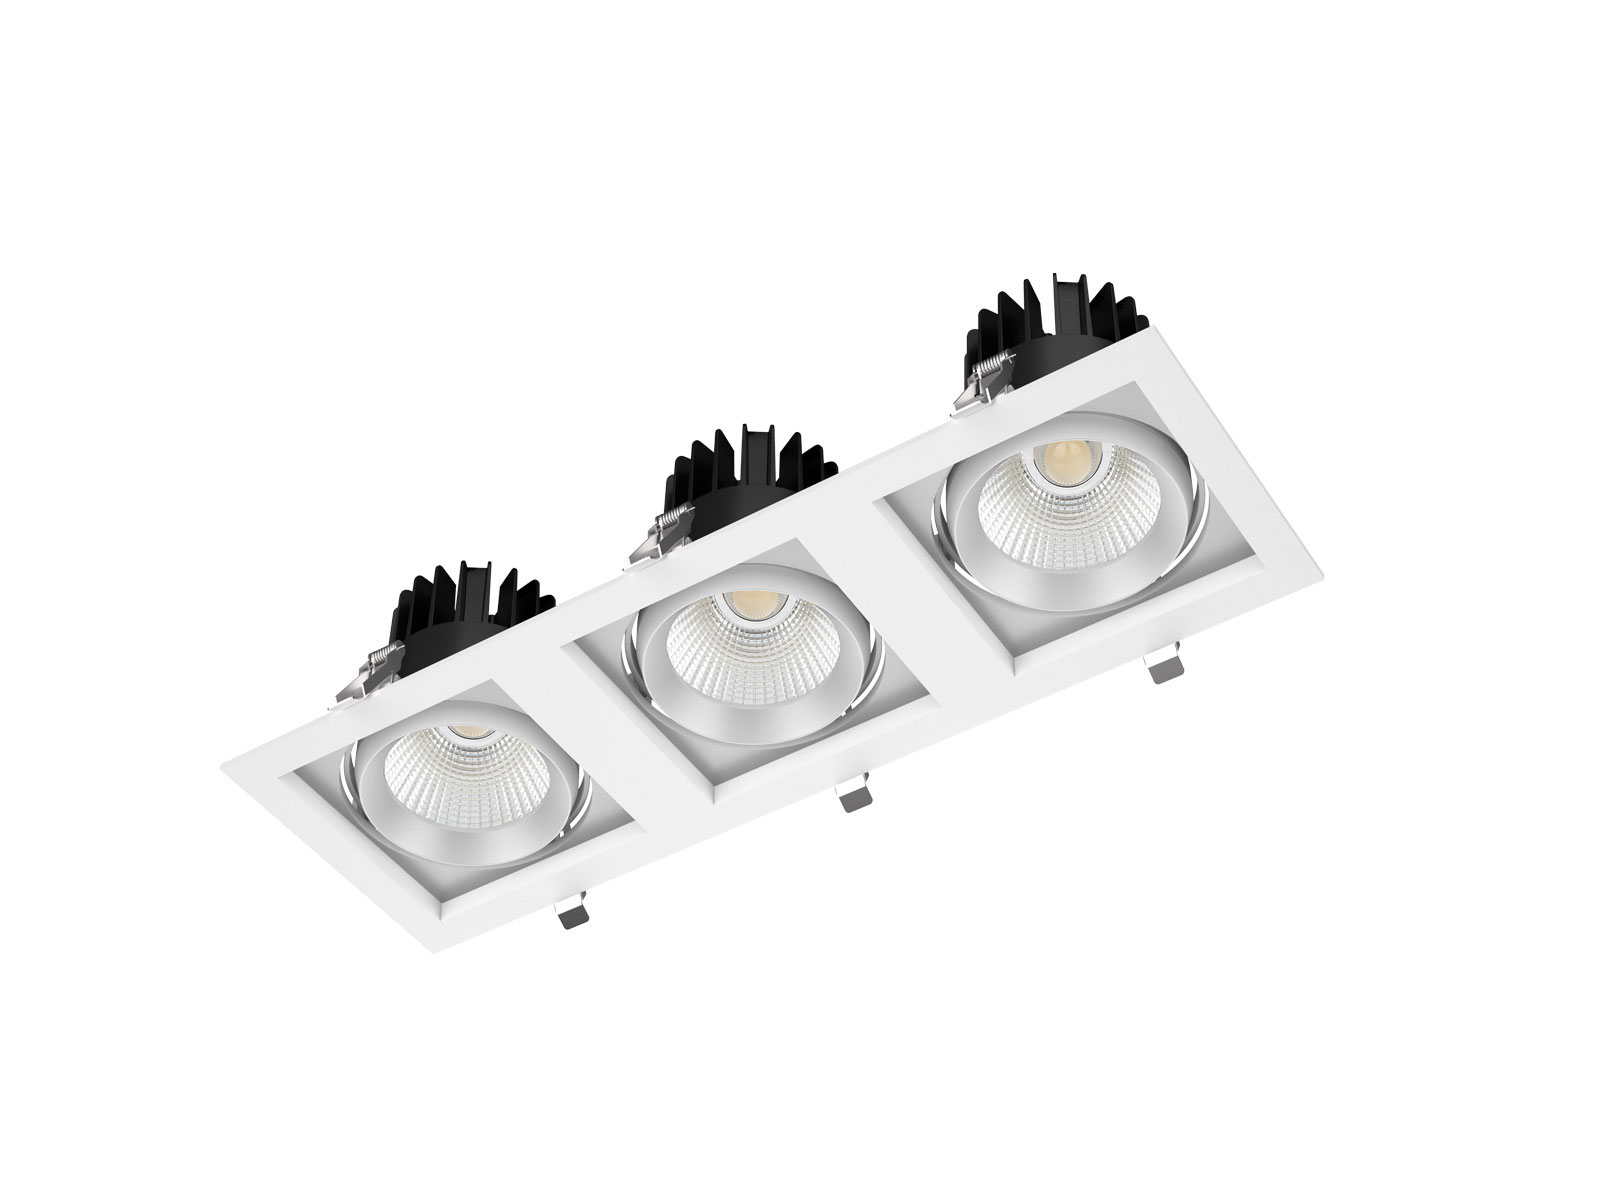 Cl113 6inch Dimmable Recessed Luminaire Upshine Lighting